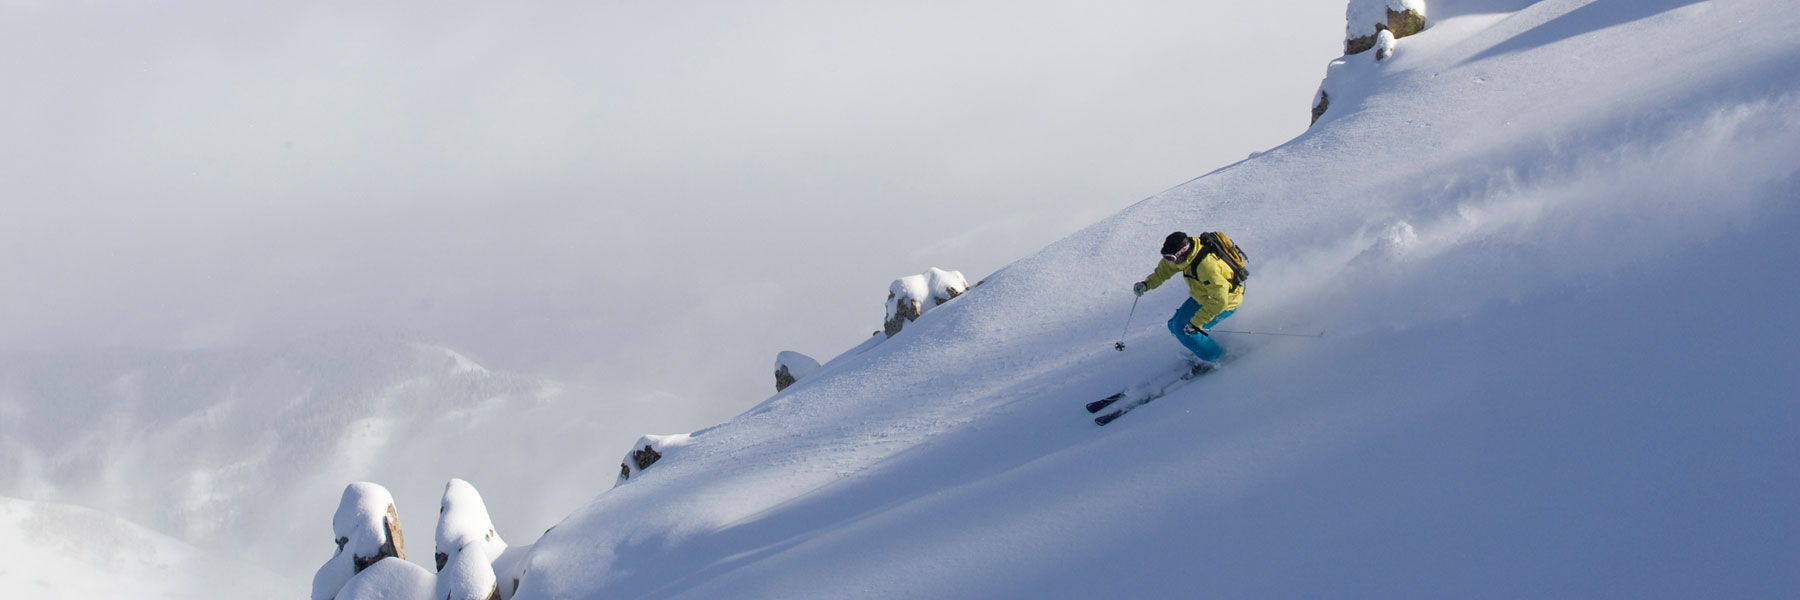 Crested Butte, CO Ski Package: Crested Butte Book Early & Save Big Promo! Save up to 30%!